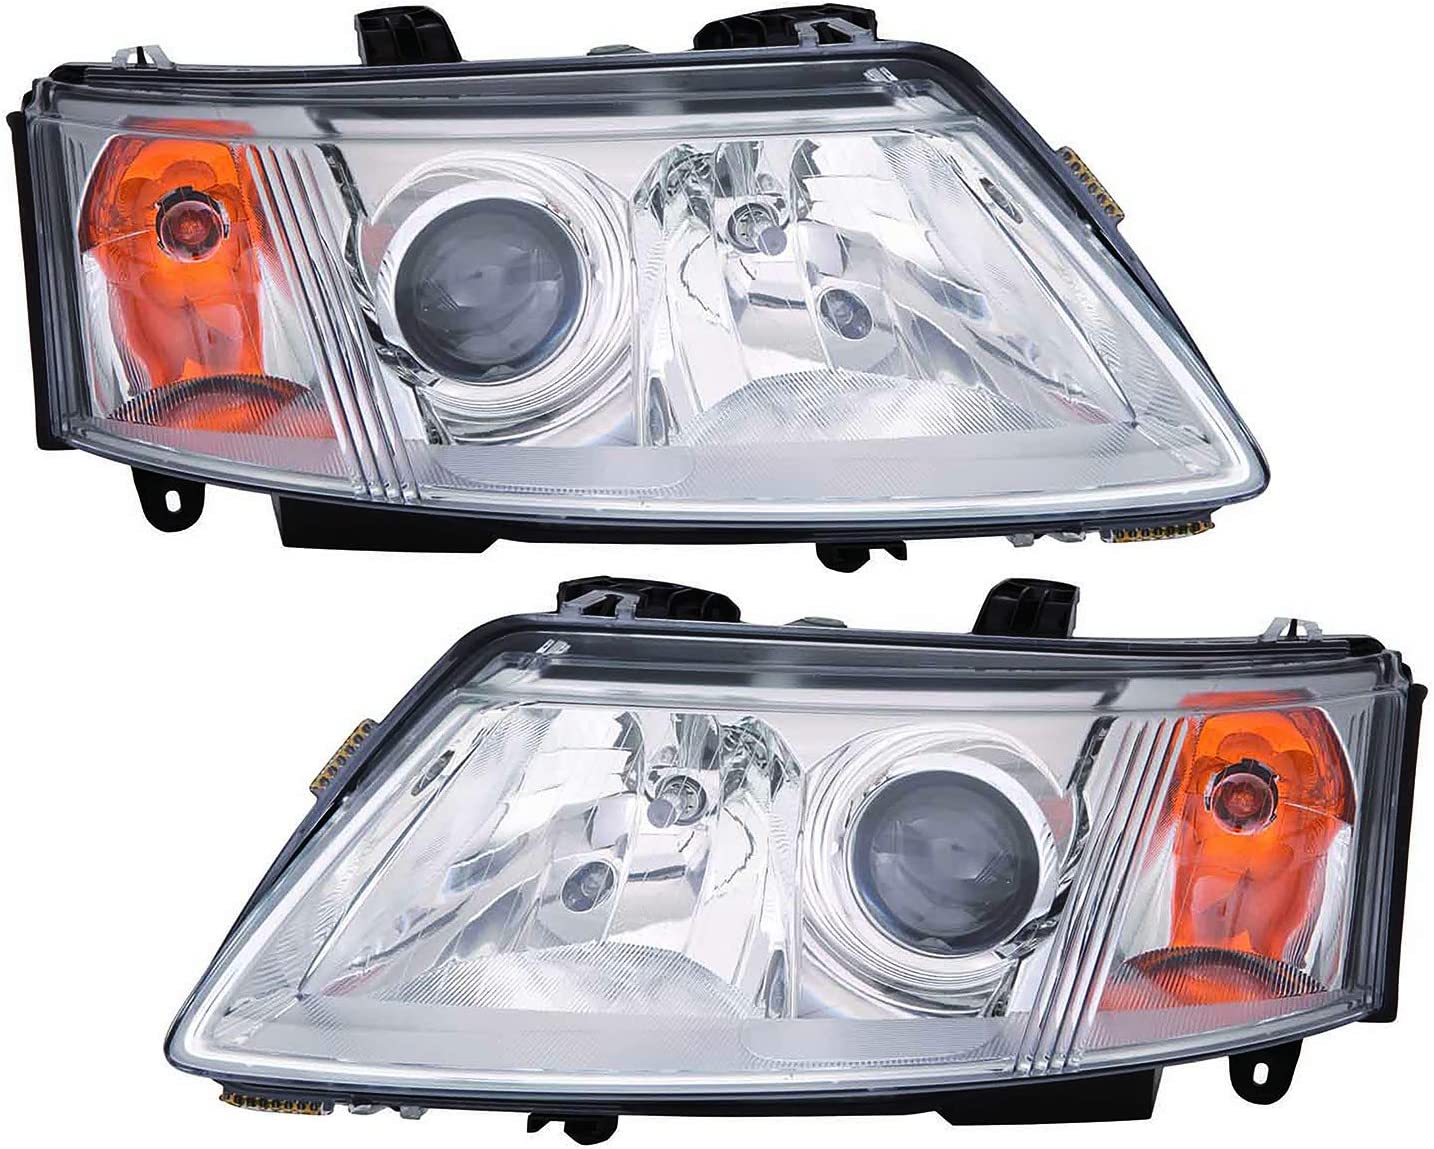 TYC 20-6693-00 Compatible with Saab 9-3 Passenger Side Headlight Assembly